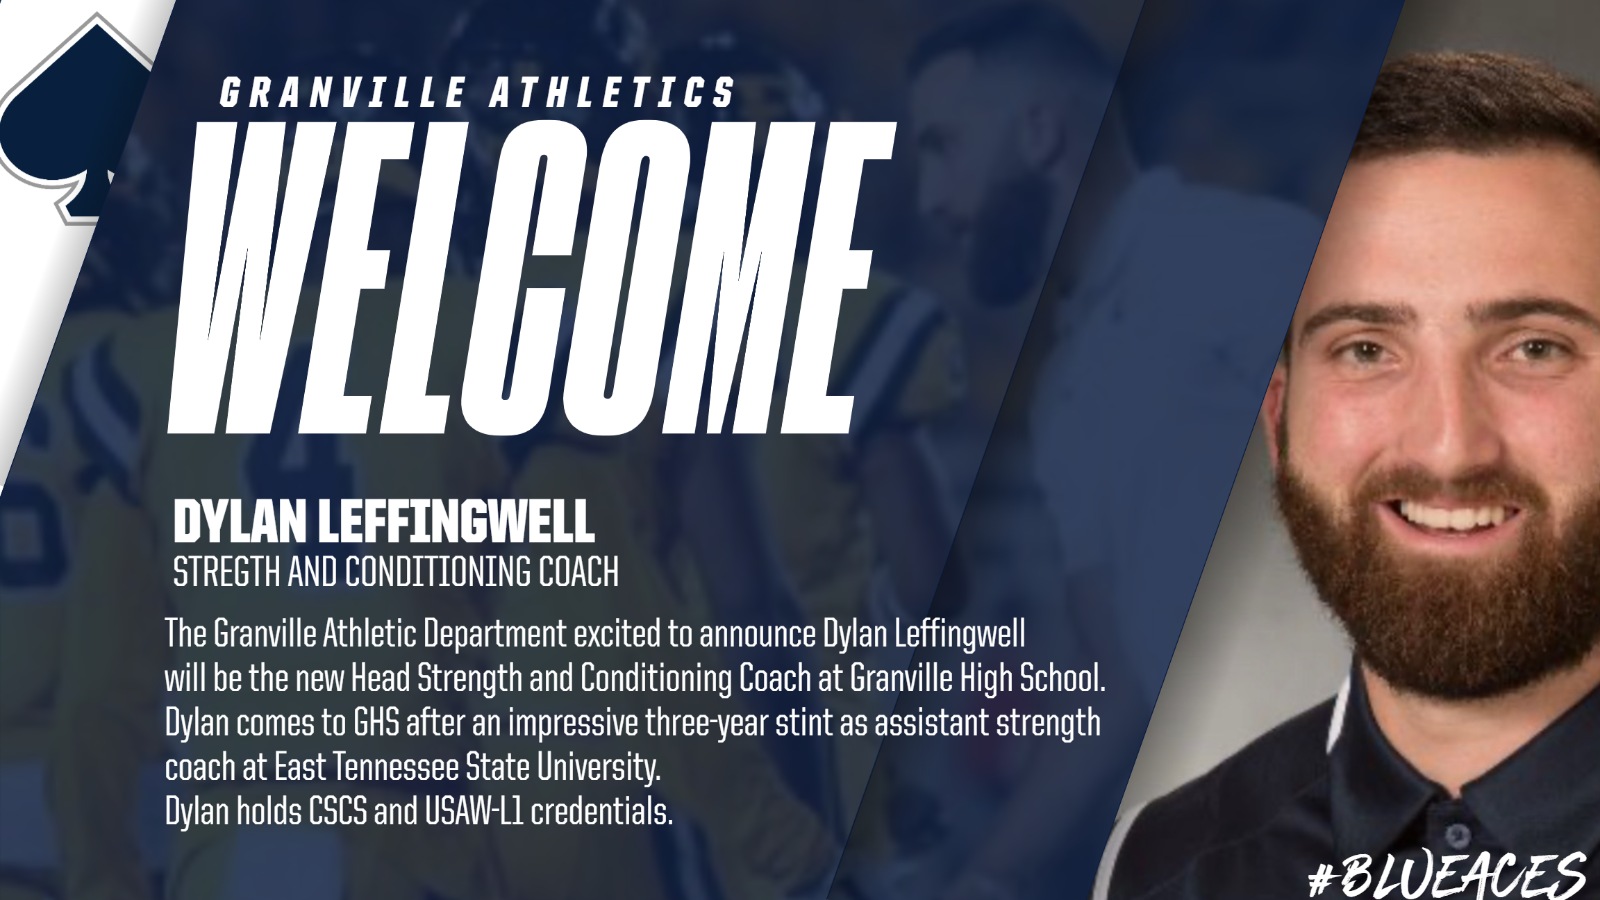 Granville Athletics lands Dylan Leffingwell as S&C Coach